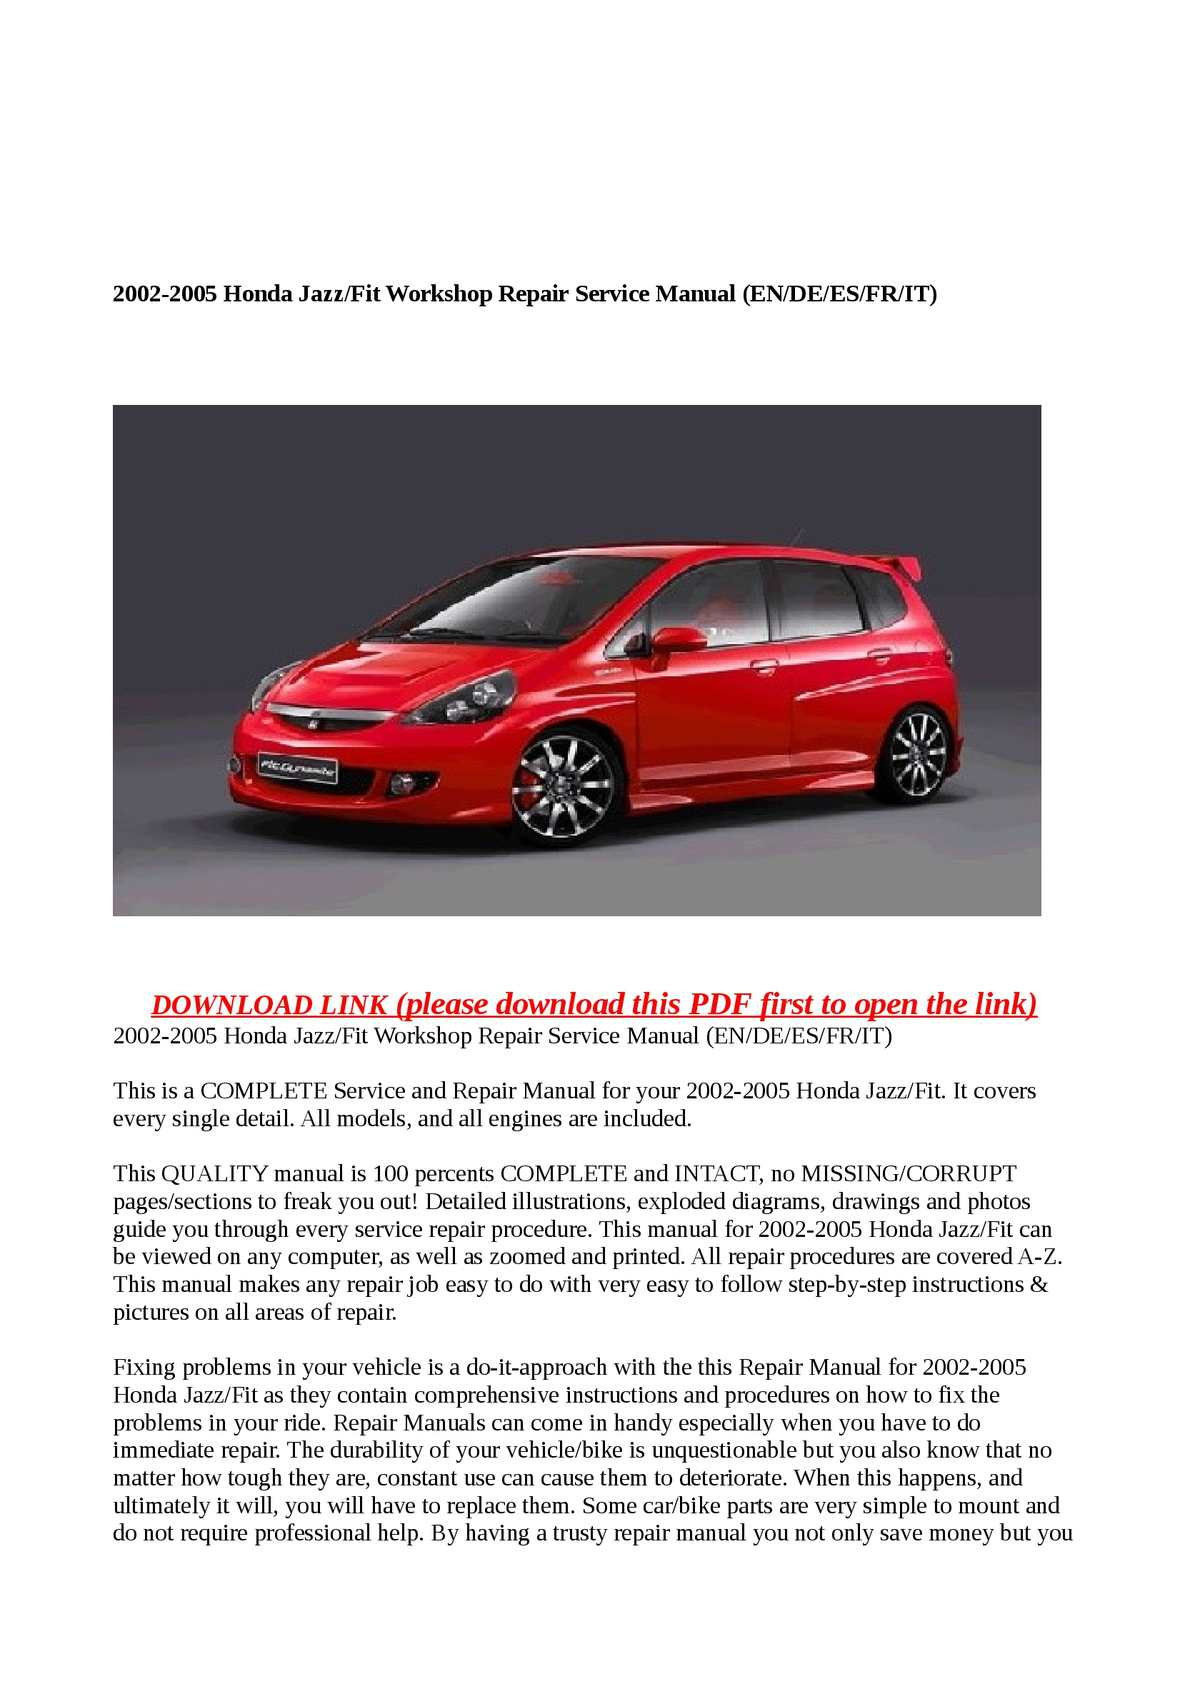 Calaméo - 2002-2005 Honda Jazz/Fit Workshop Repair Service Manual  (EN/DE/ES/FR/IT)